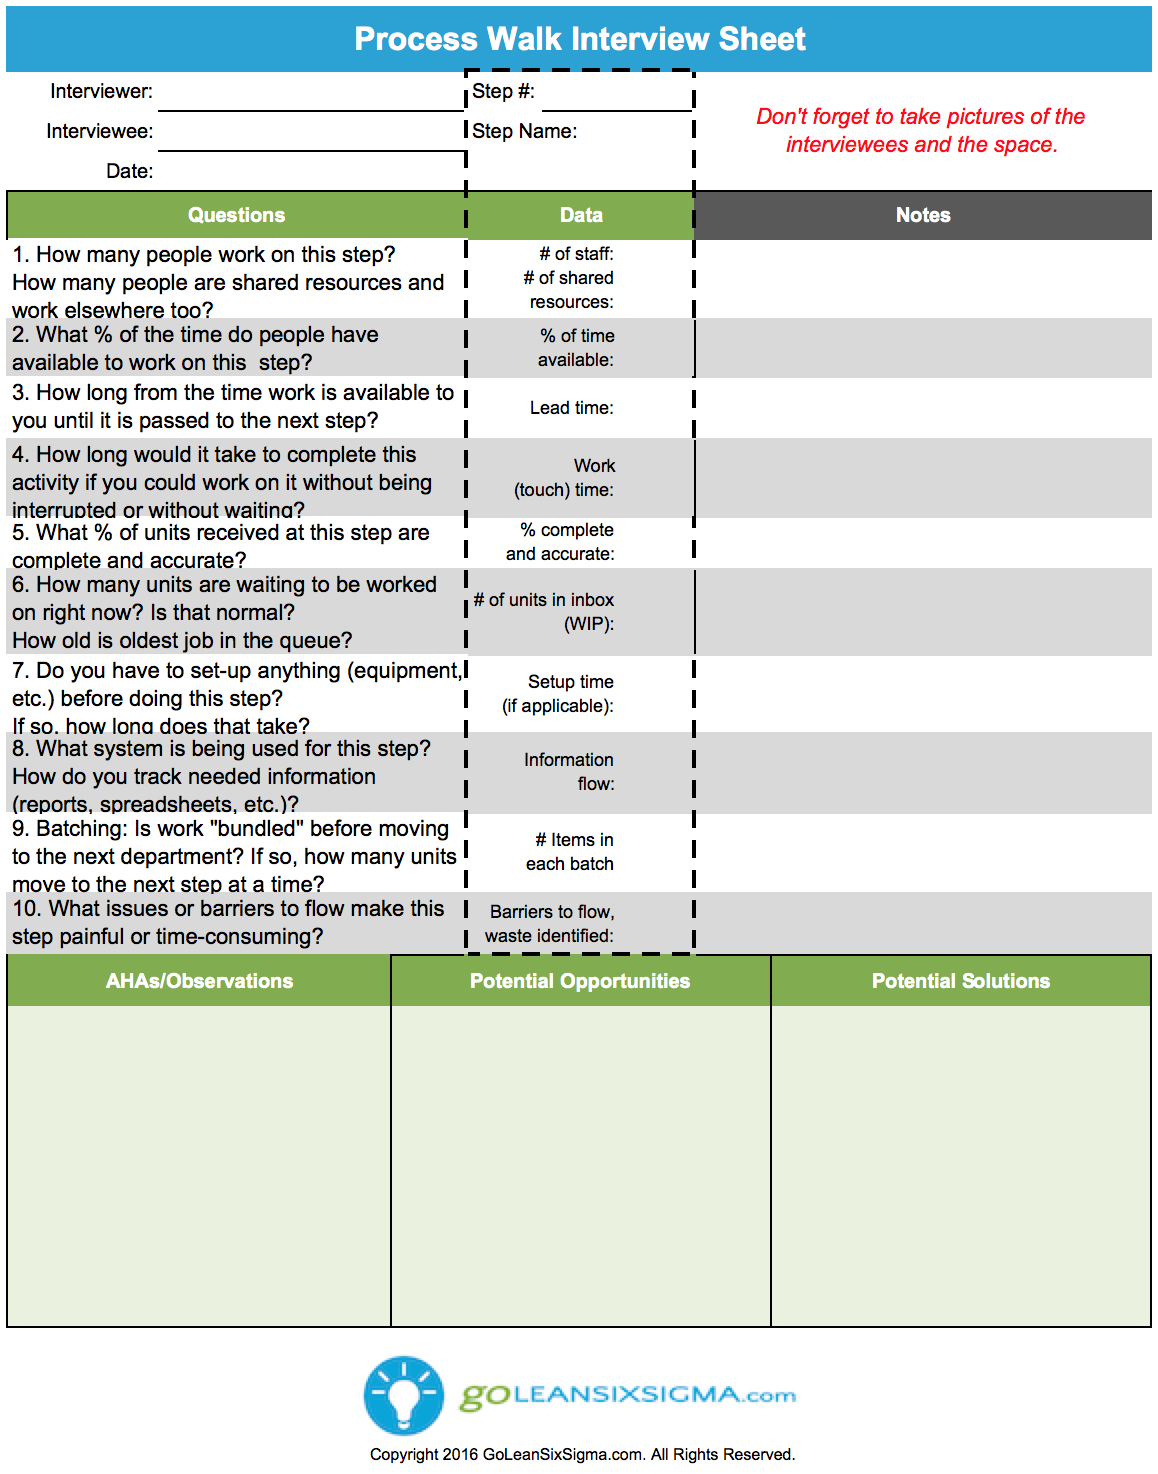 Process Walk Interview Sheet Aka Gemba Walk Interview Sheet